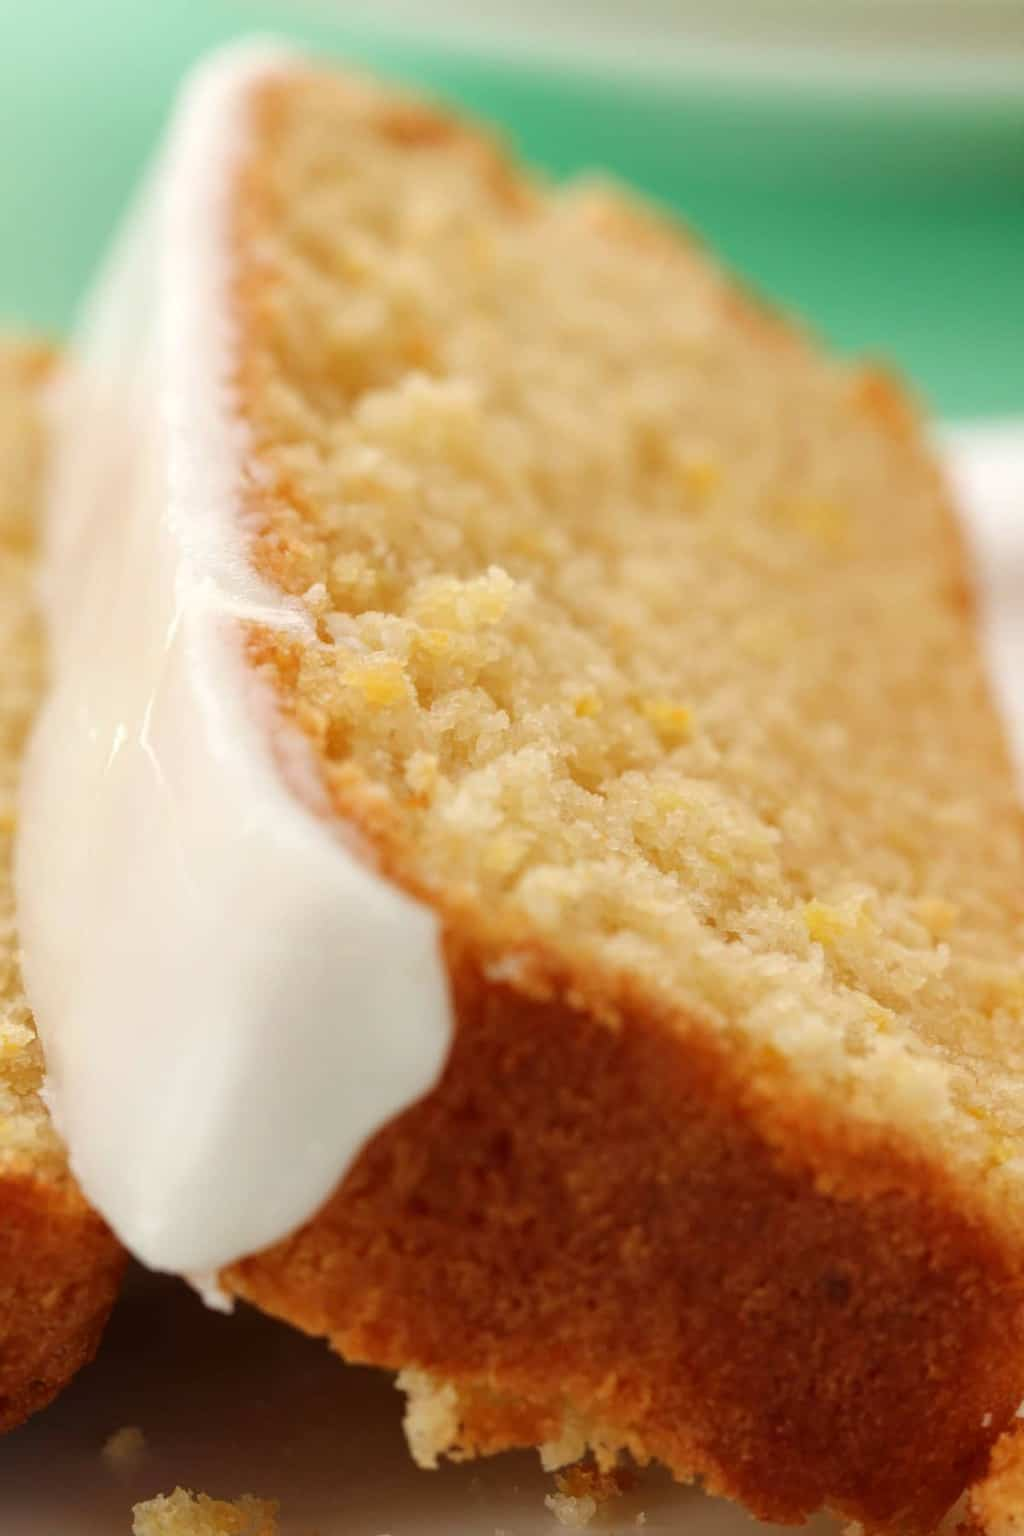 Vegan Lemon Pound Cake slices on a white plate.